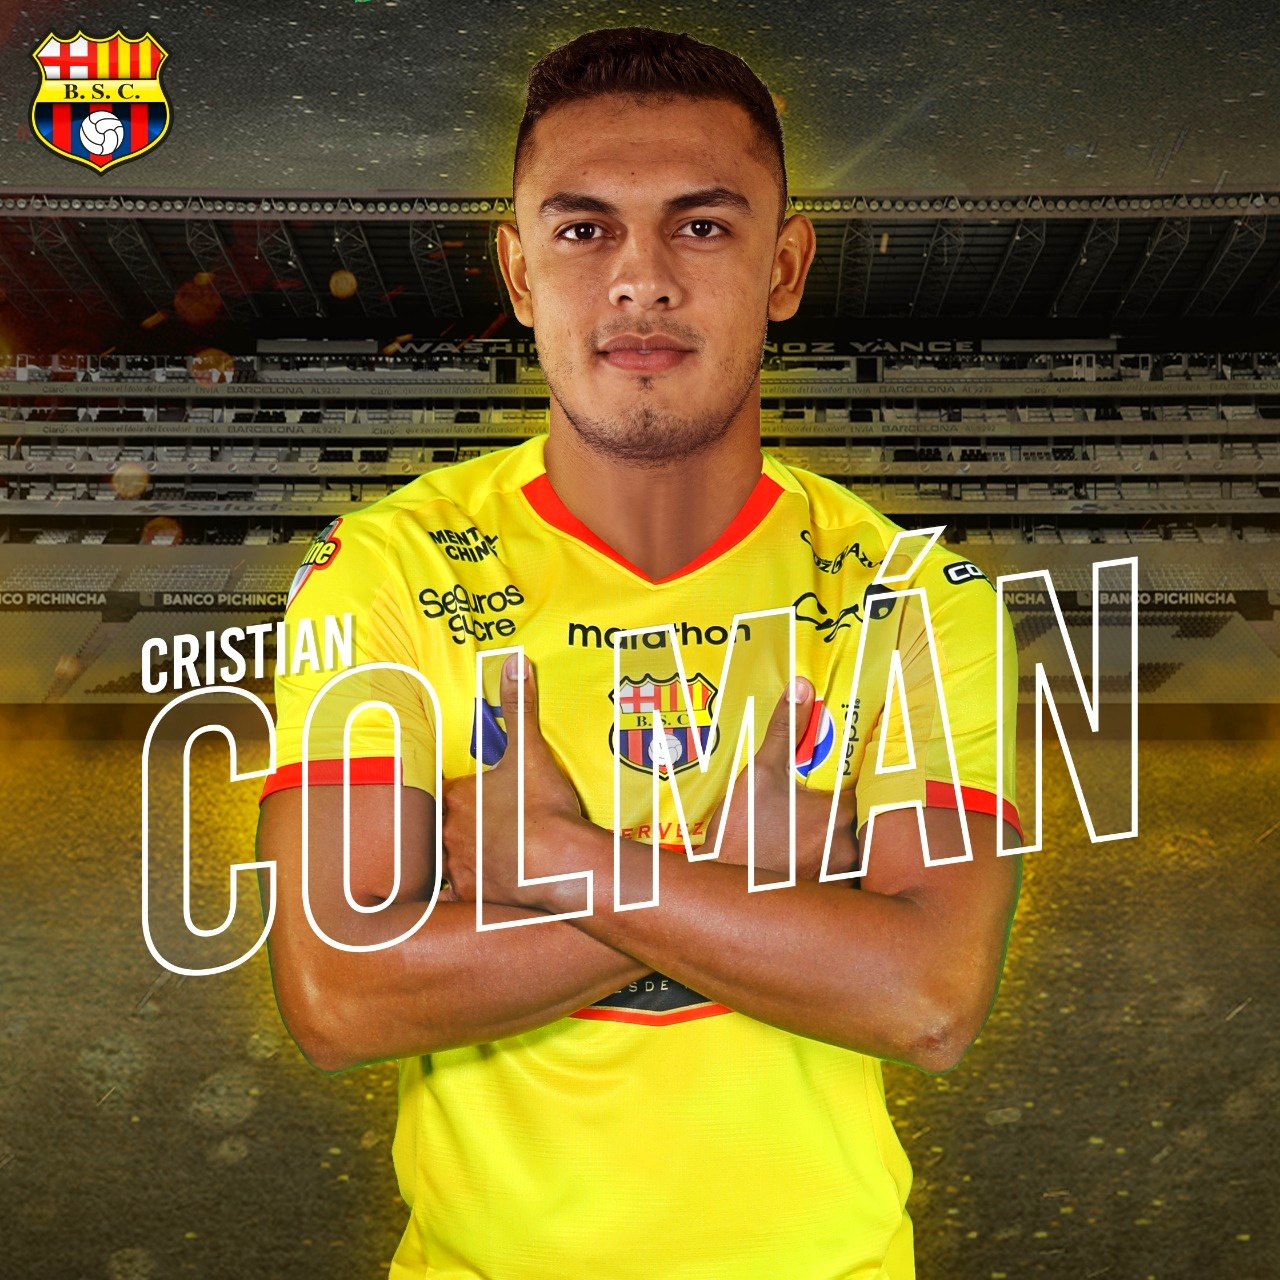 Photo of Comunicado Oficial: Cristian Colmán es nuevo refuerzo de Barcelona